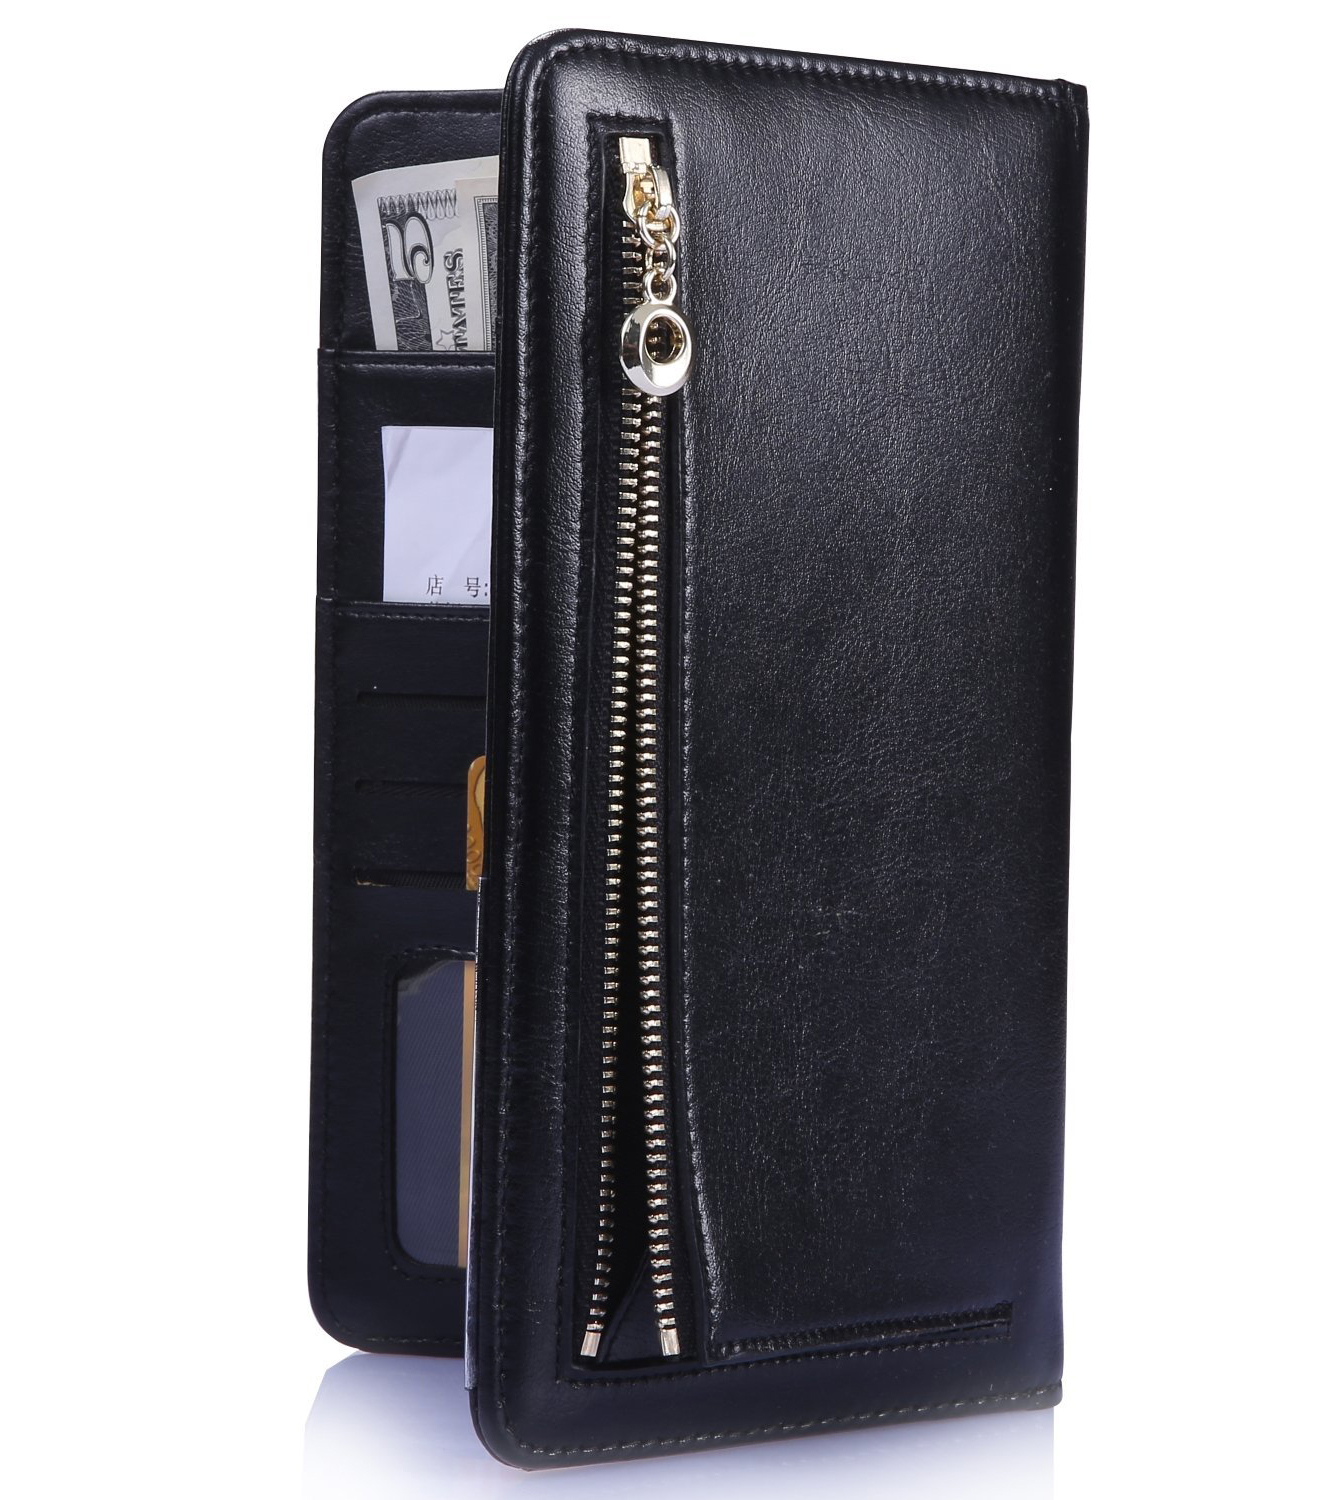 Hot Sale Hotel Guest Leather Restaurant Bill Folder,Guest Check Book Holder with Zipper Pocket